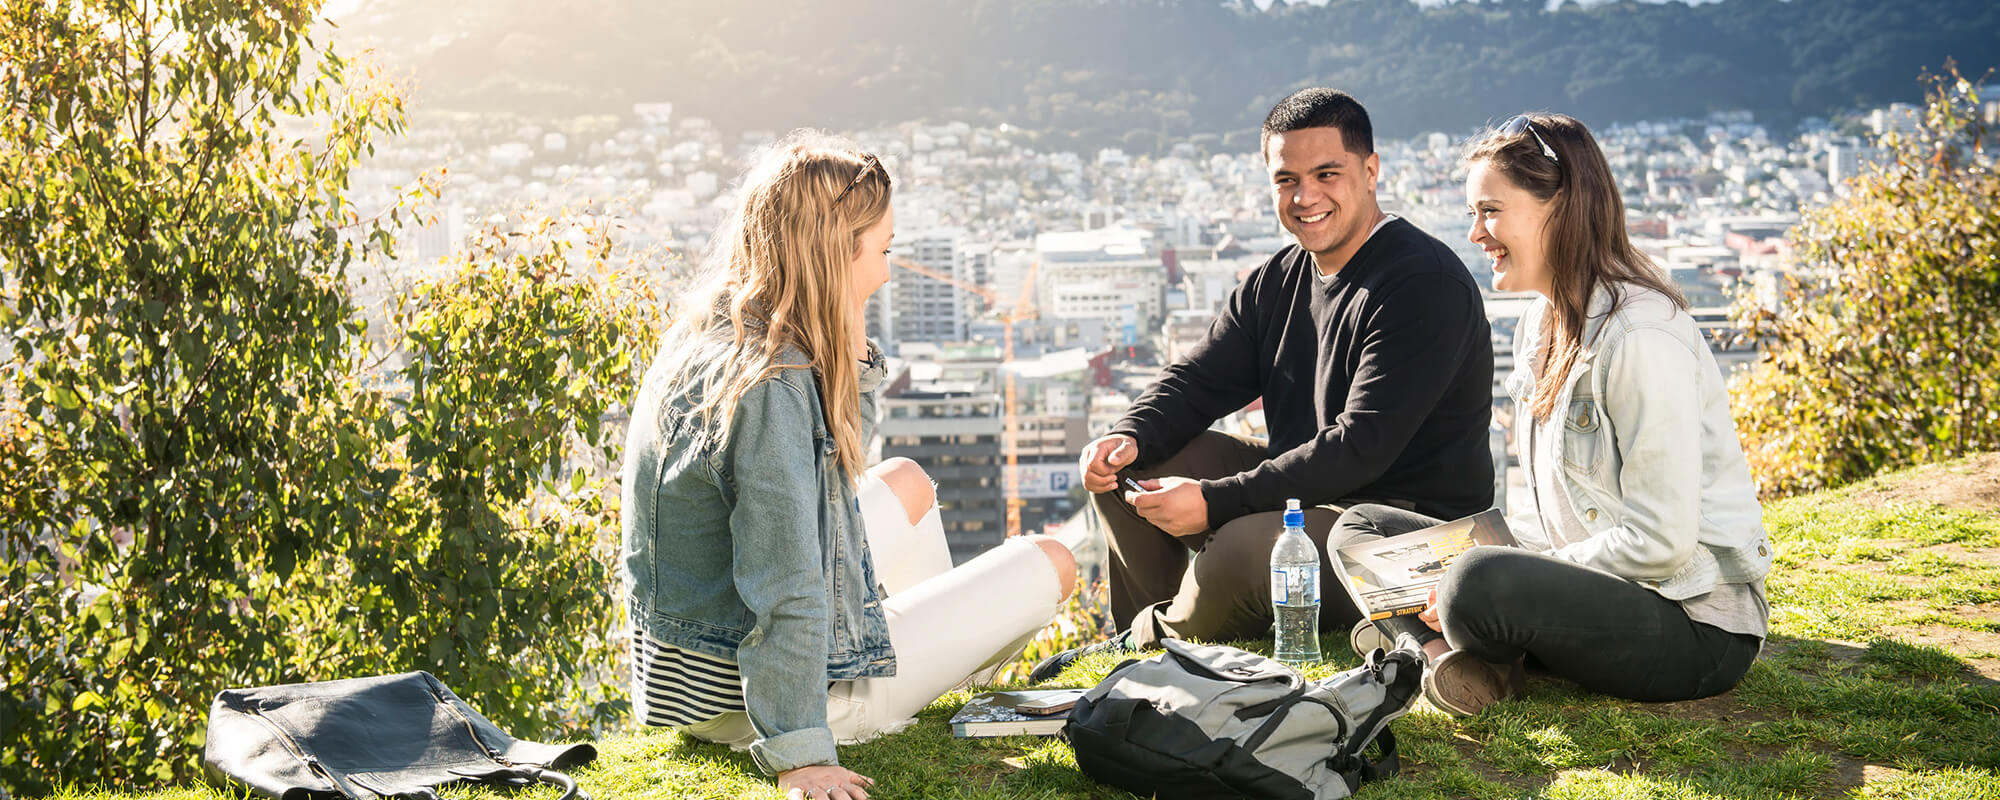 undergraduate degrees victoria university of wellington school s